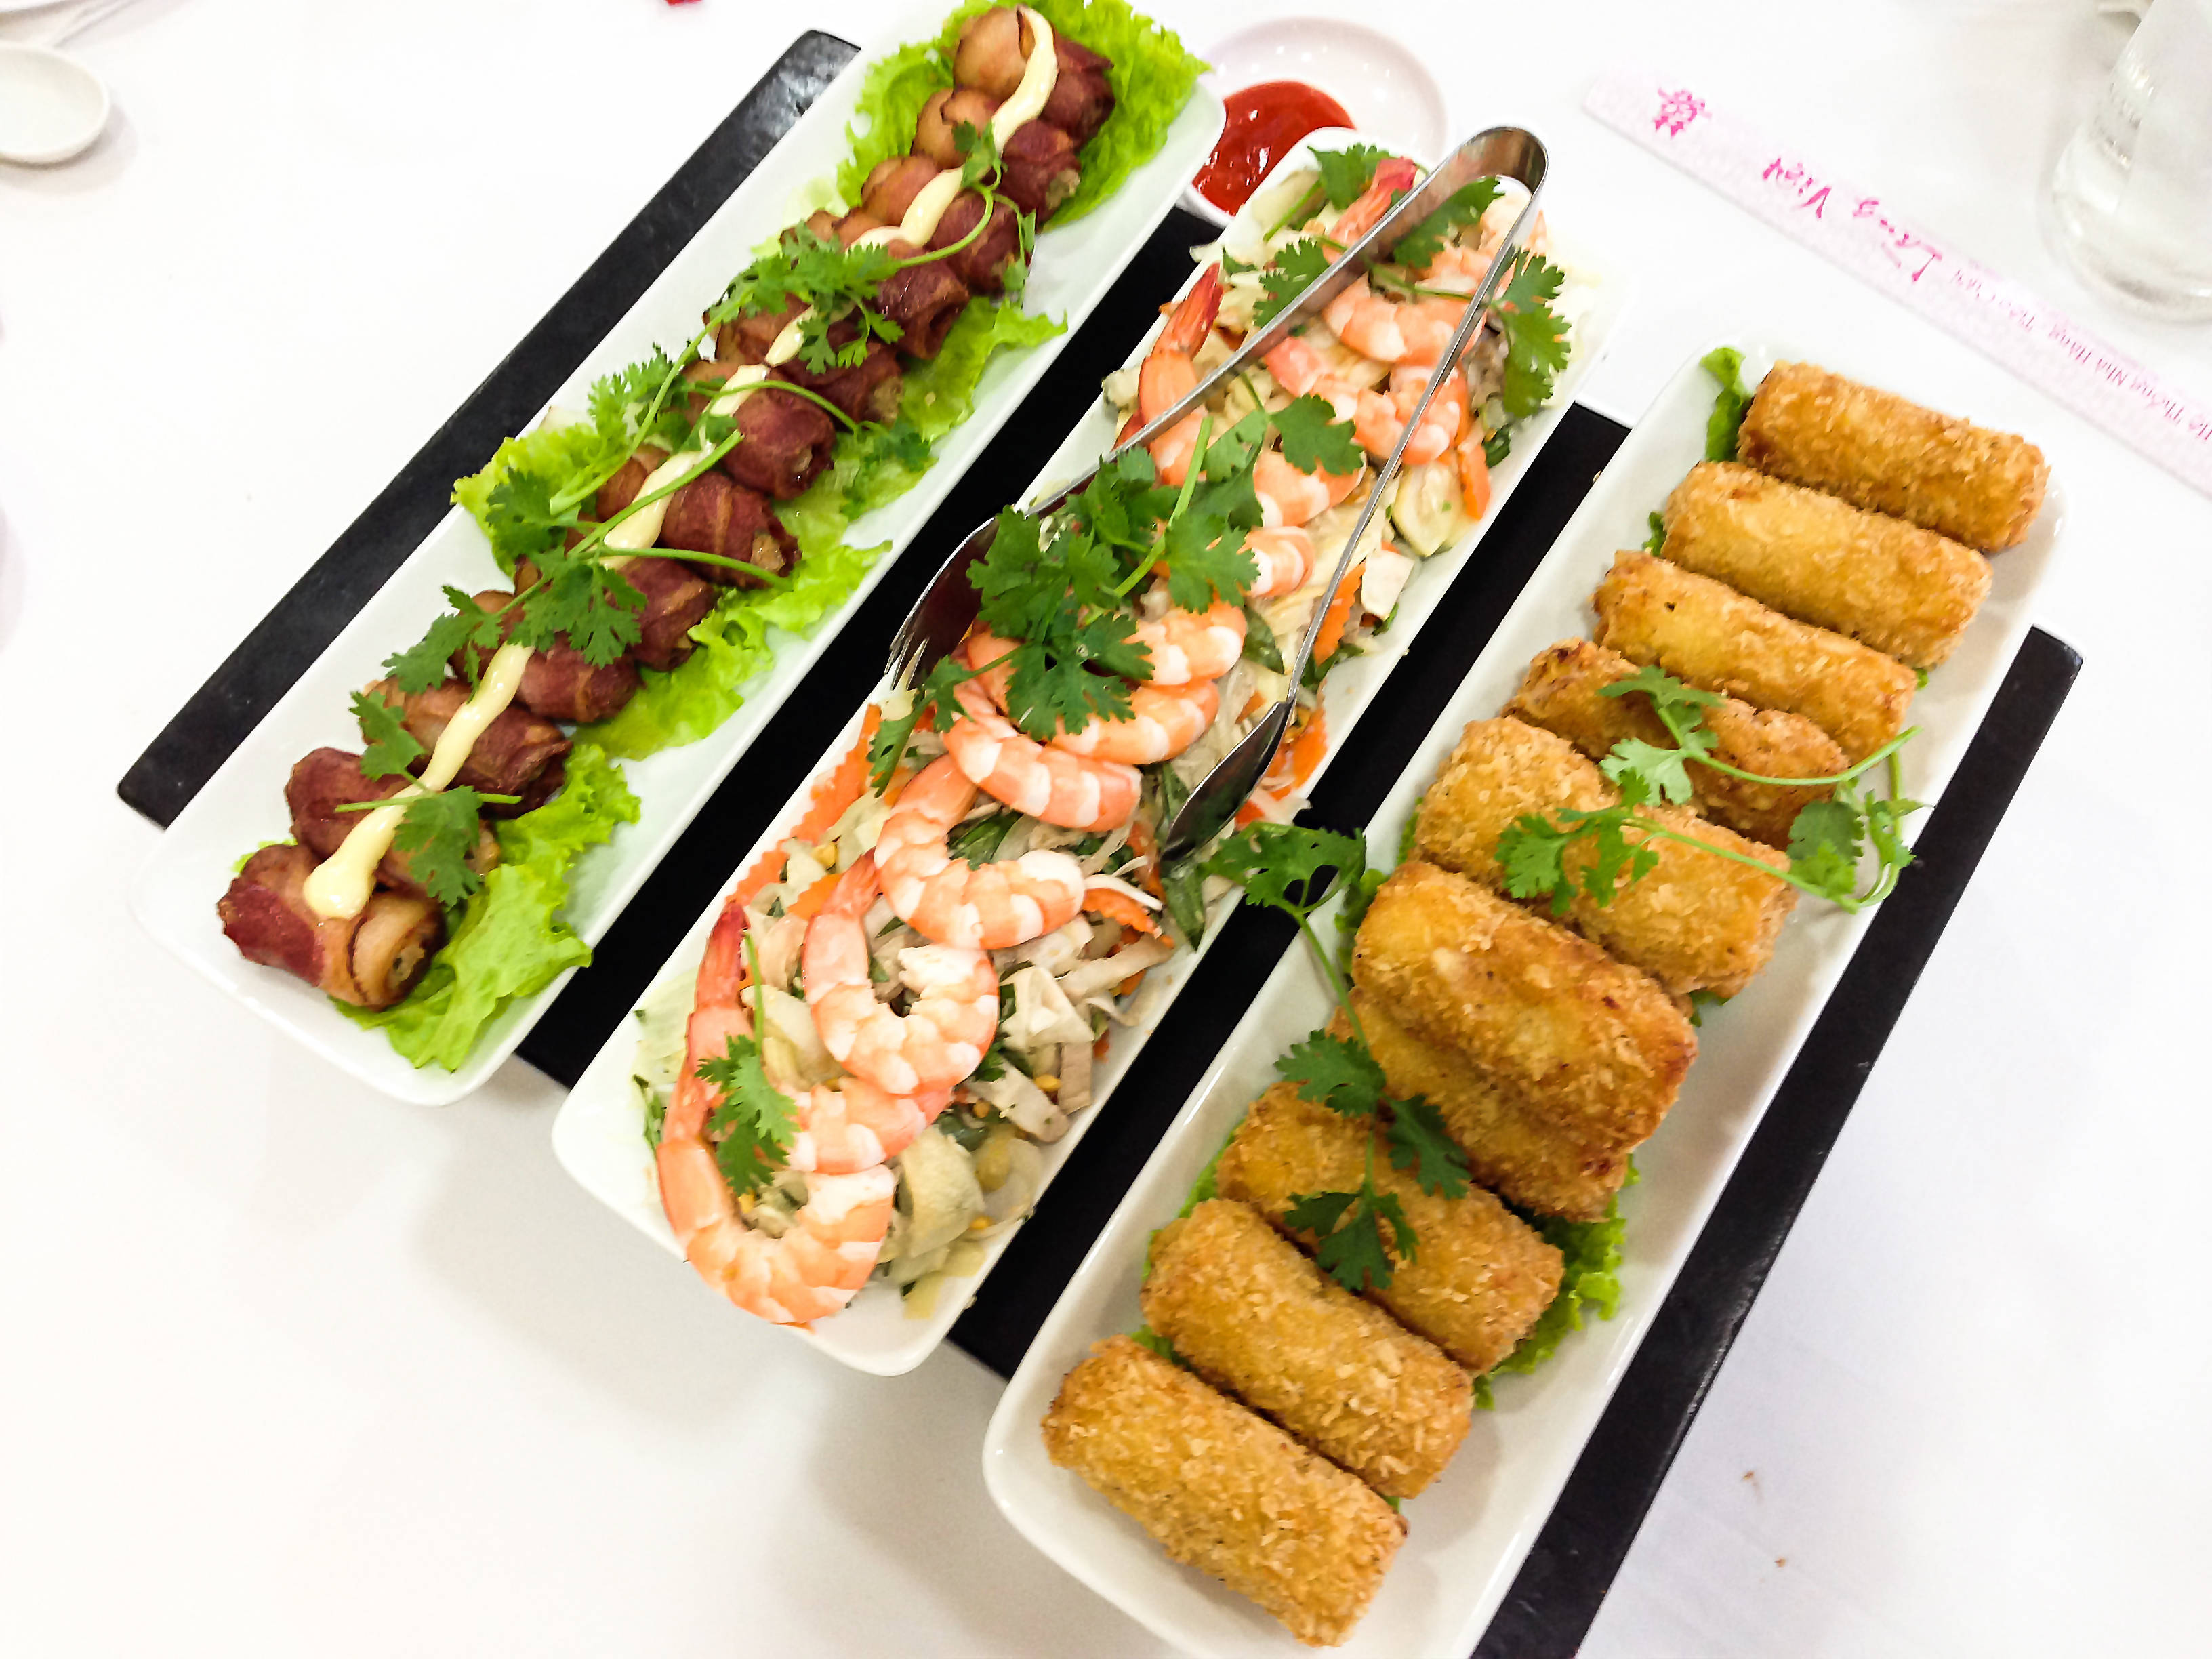 French style spring rolls, shrimp salad and jambon rolls with grilled fish